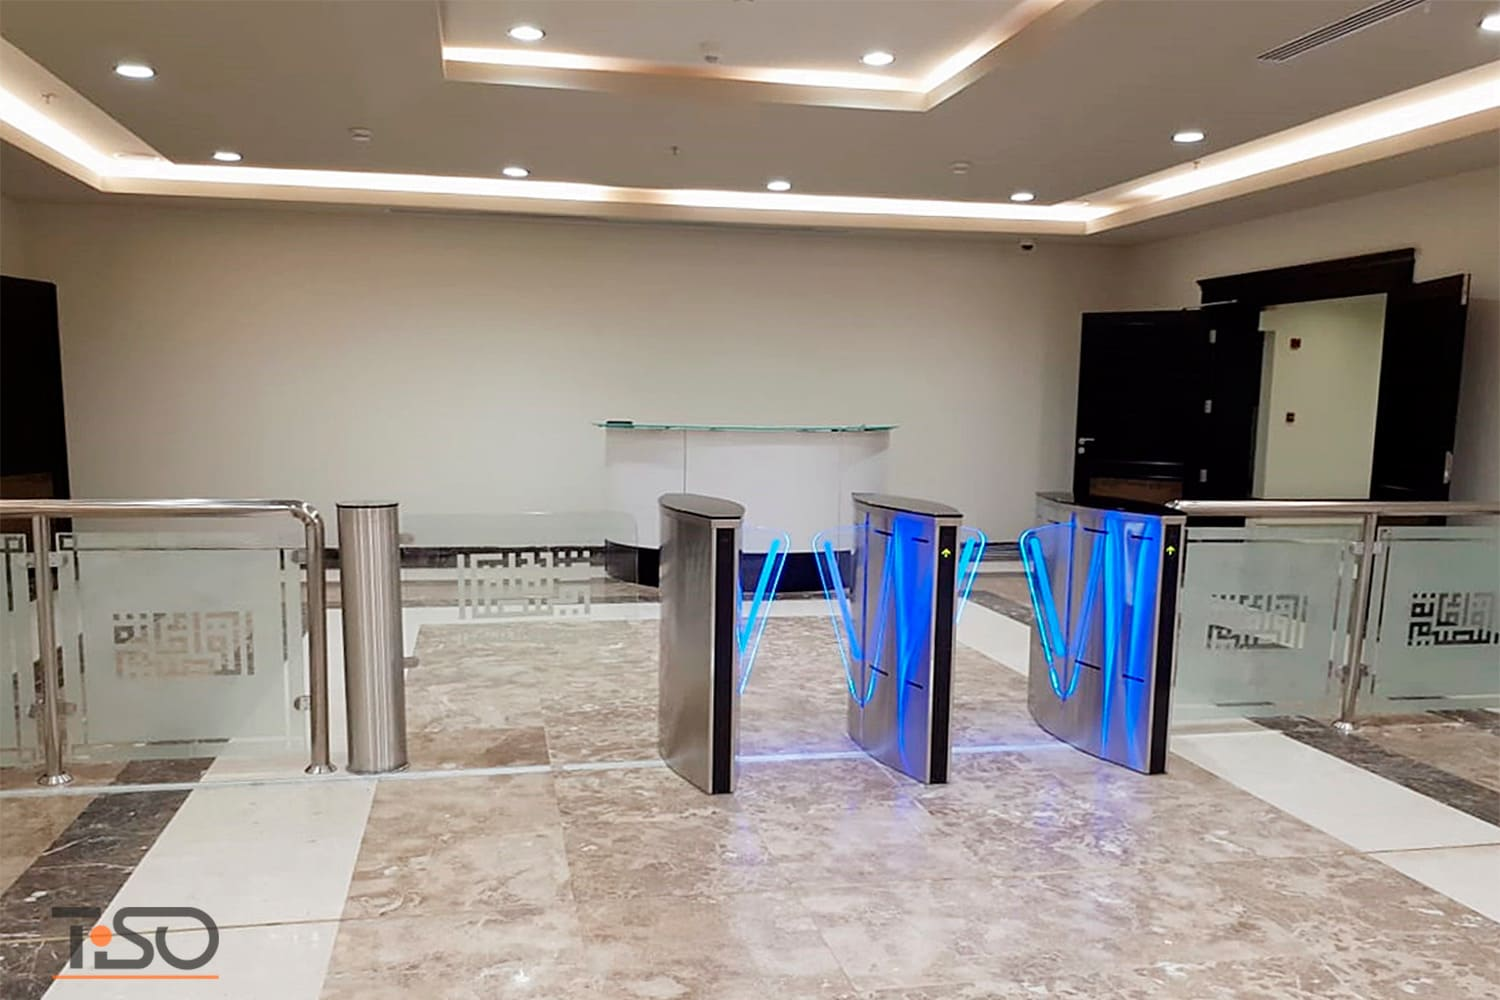 Speedblade and Gate-GS, Qassim Municipality KSA, Saudi Arabia